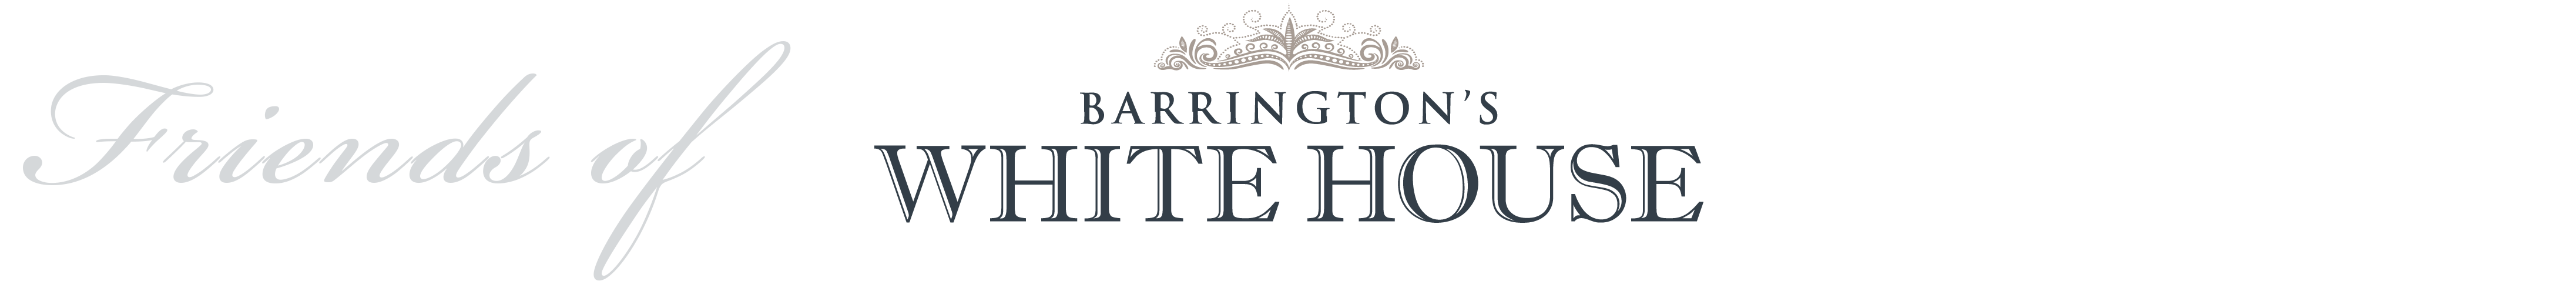 Friends of Barrington's White House Logo